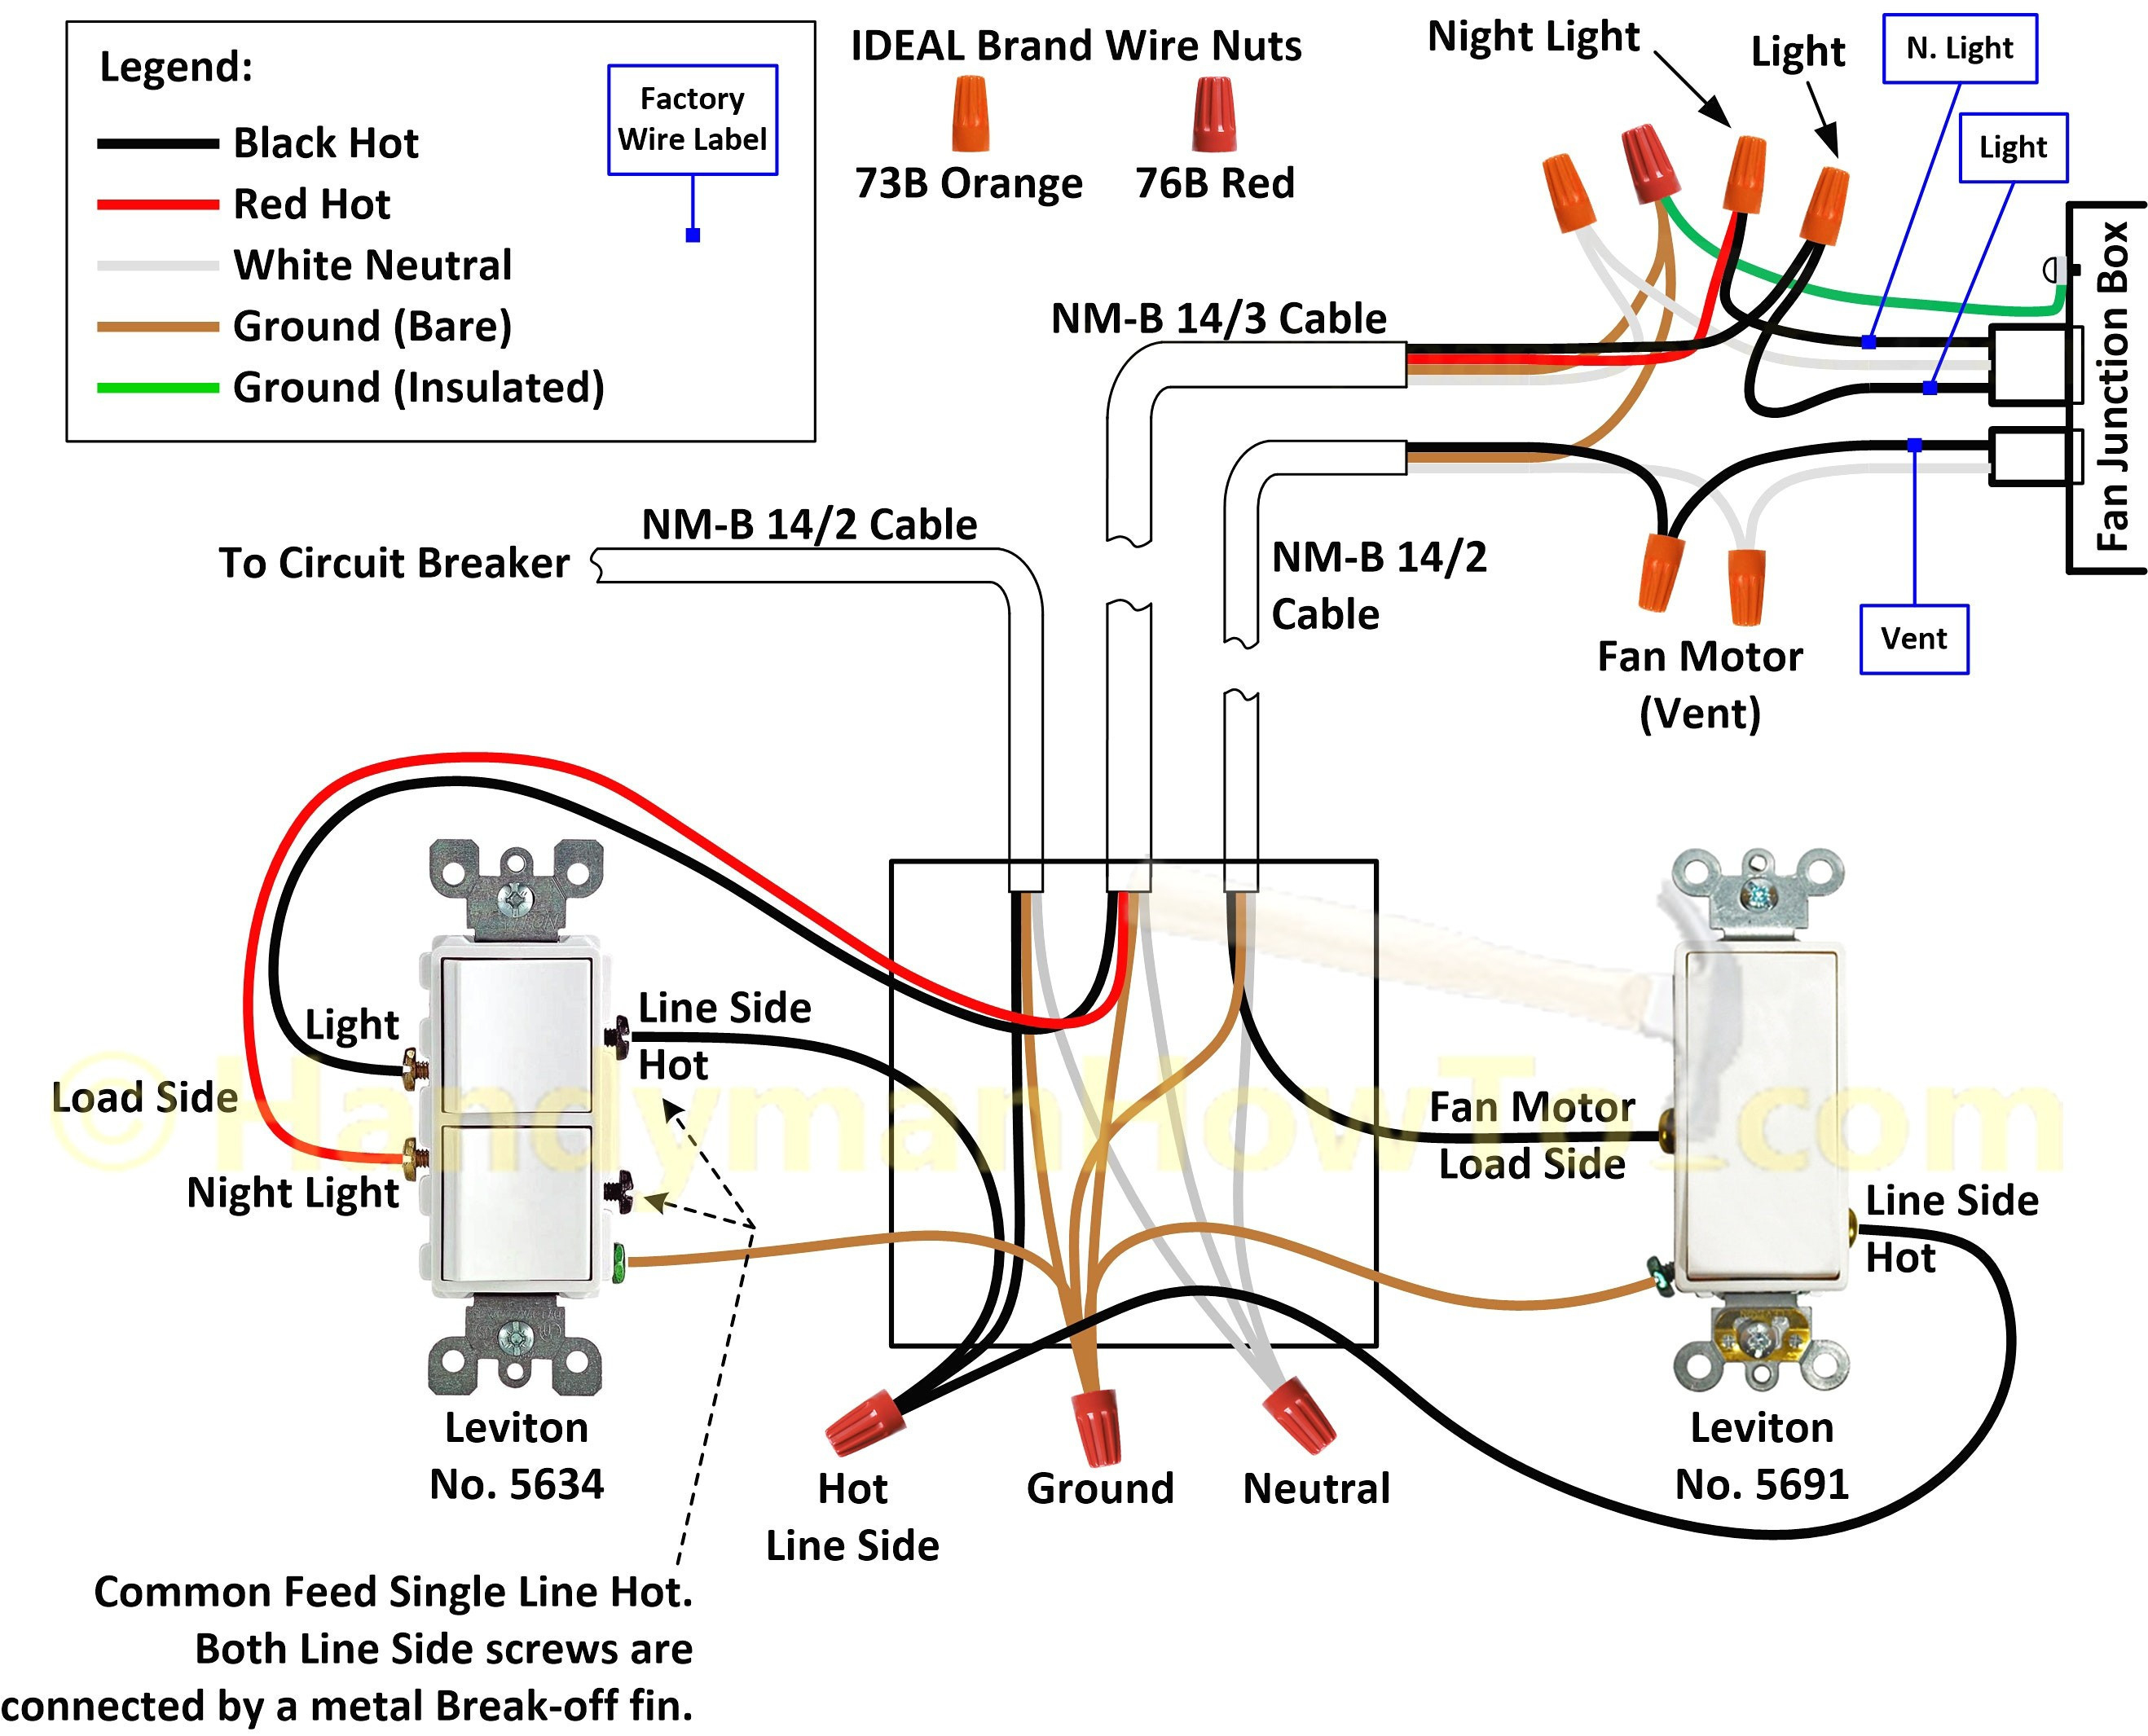 Double 4 Way Switch Wiring Diagram | Wiring Diagram - 3 Way Switch Single Pole Wiring Diagram